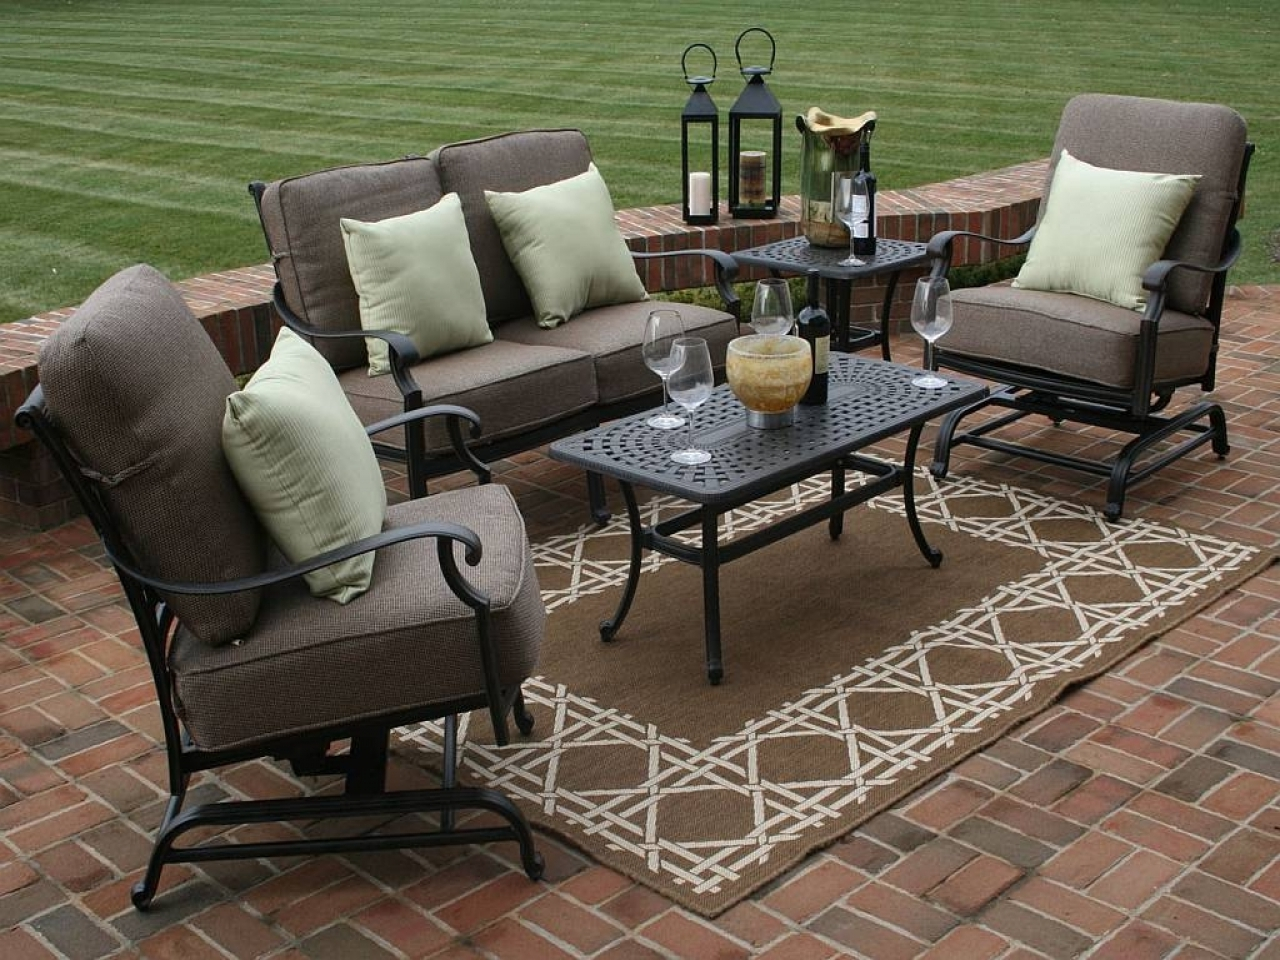 2018 How To Make Patio Furniture Sets — The Home Redesign In Nfm Patio Conversation Sets (View 1 of 20)